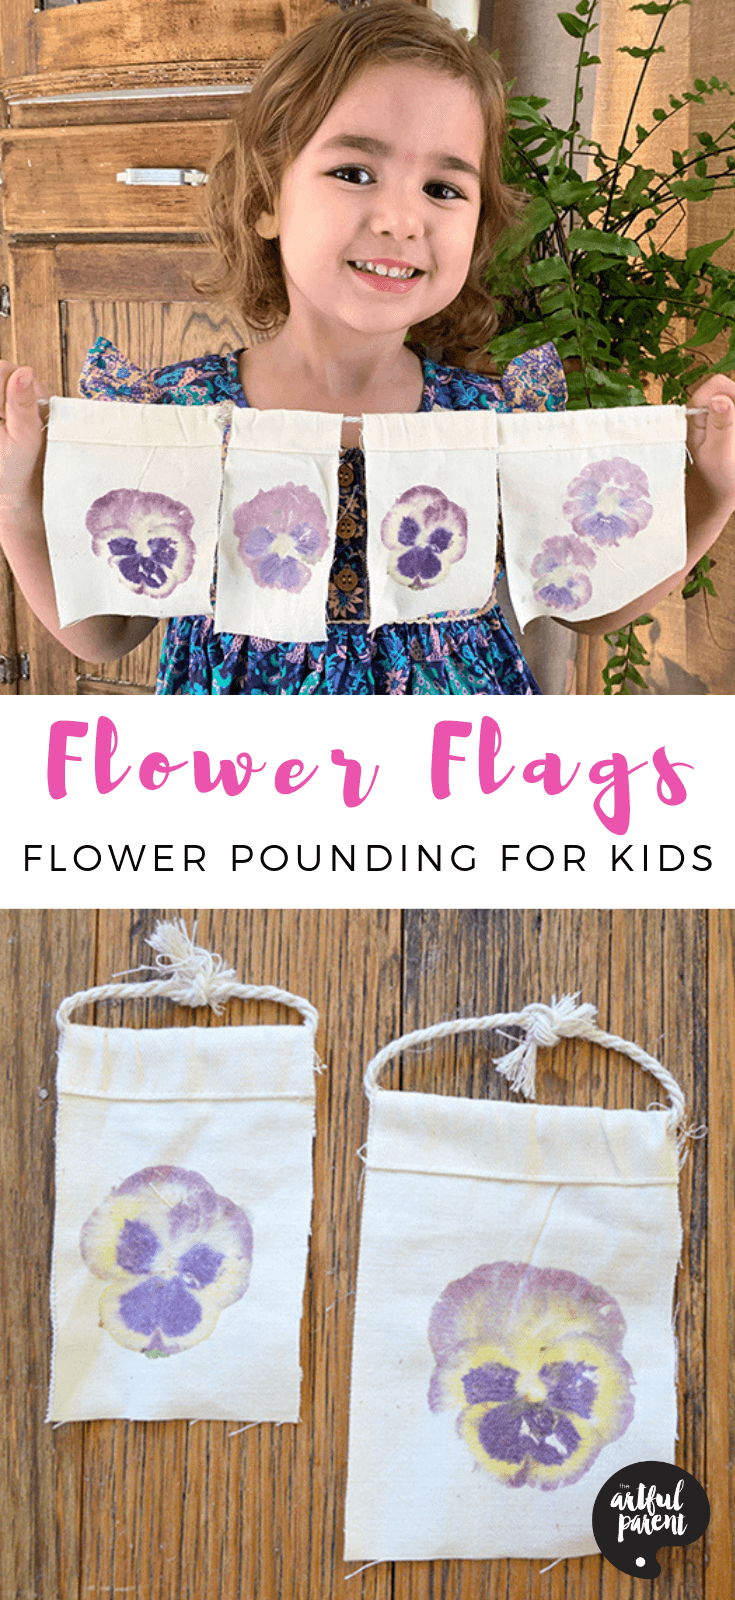 Flower flags are an amazing process art activity for kids! Watch as the pigments from the flower transfer onto canvas, creating a beautiful flower wall hanging. #preschoolers #toddlers #creativehome #springcrafts #summercrafts #spring #summer #kidscrafts #craftsforkids #flowerpounding